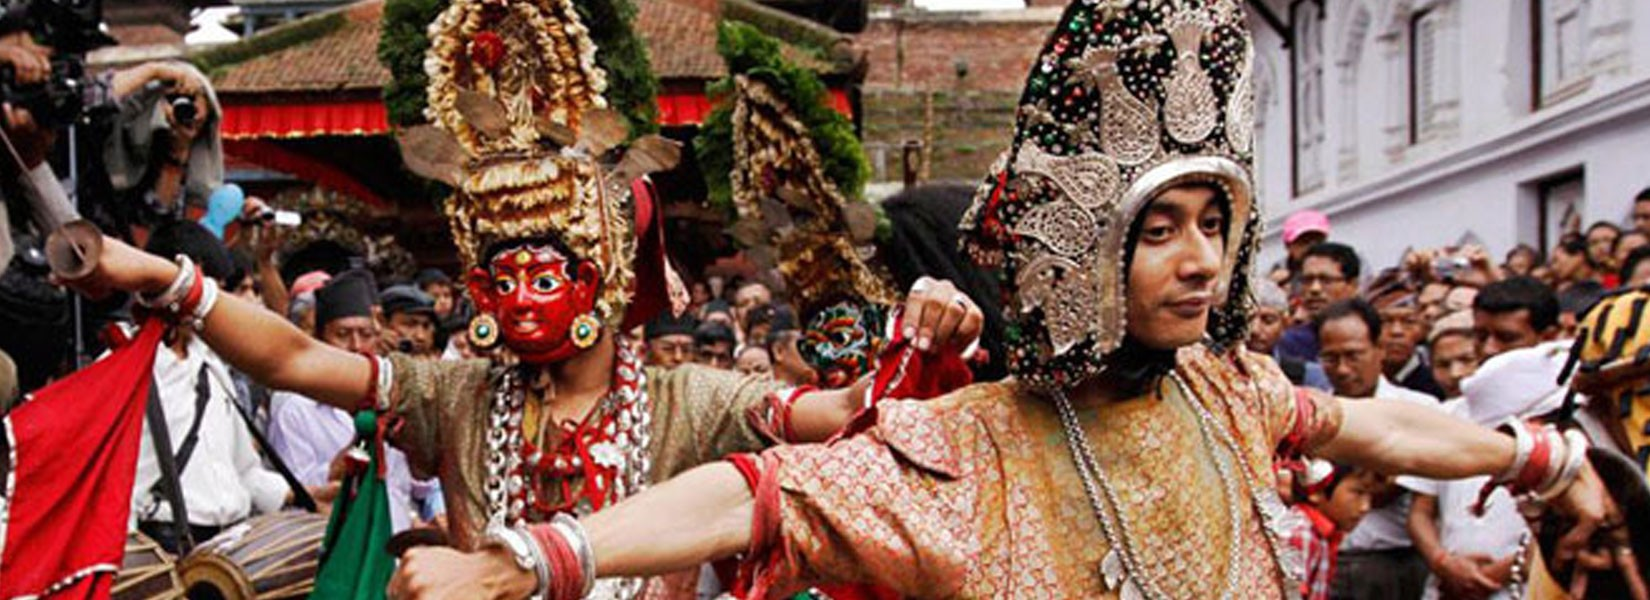 Nepal Festival Tours and Treks